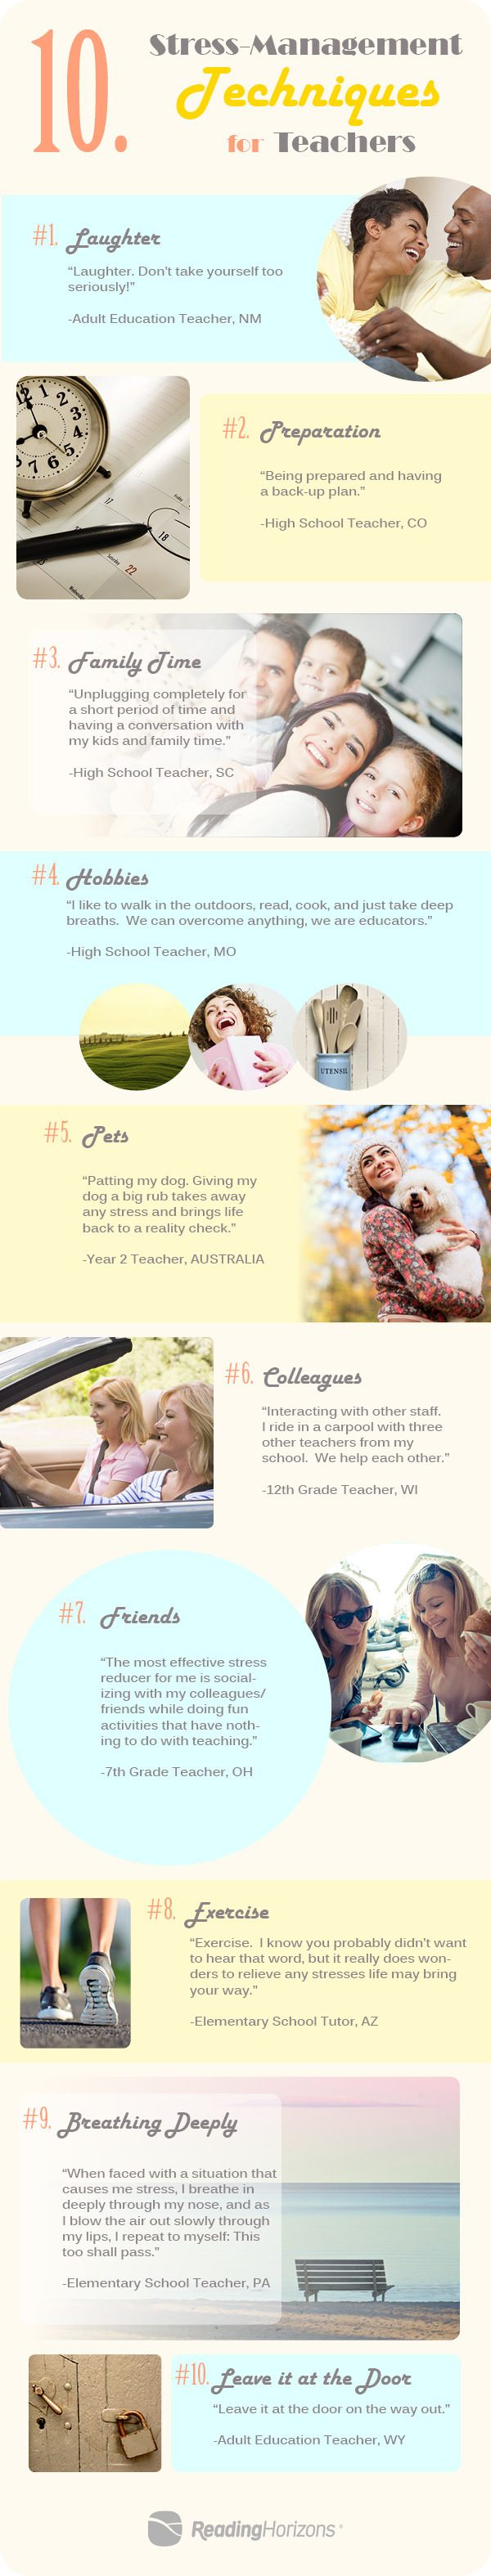 stress management techniques for teachers infographic e  10 stress management techniques for teachers infographic